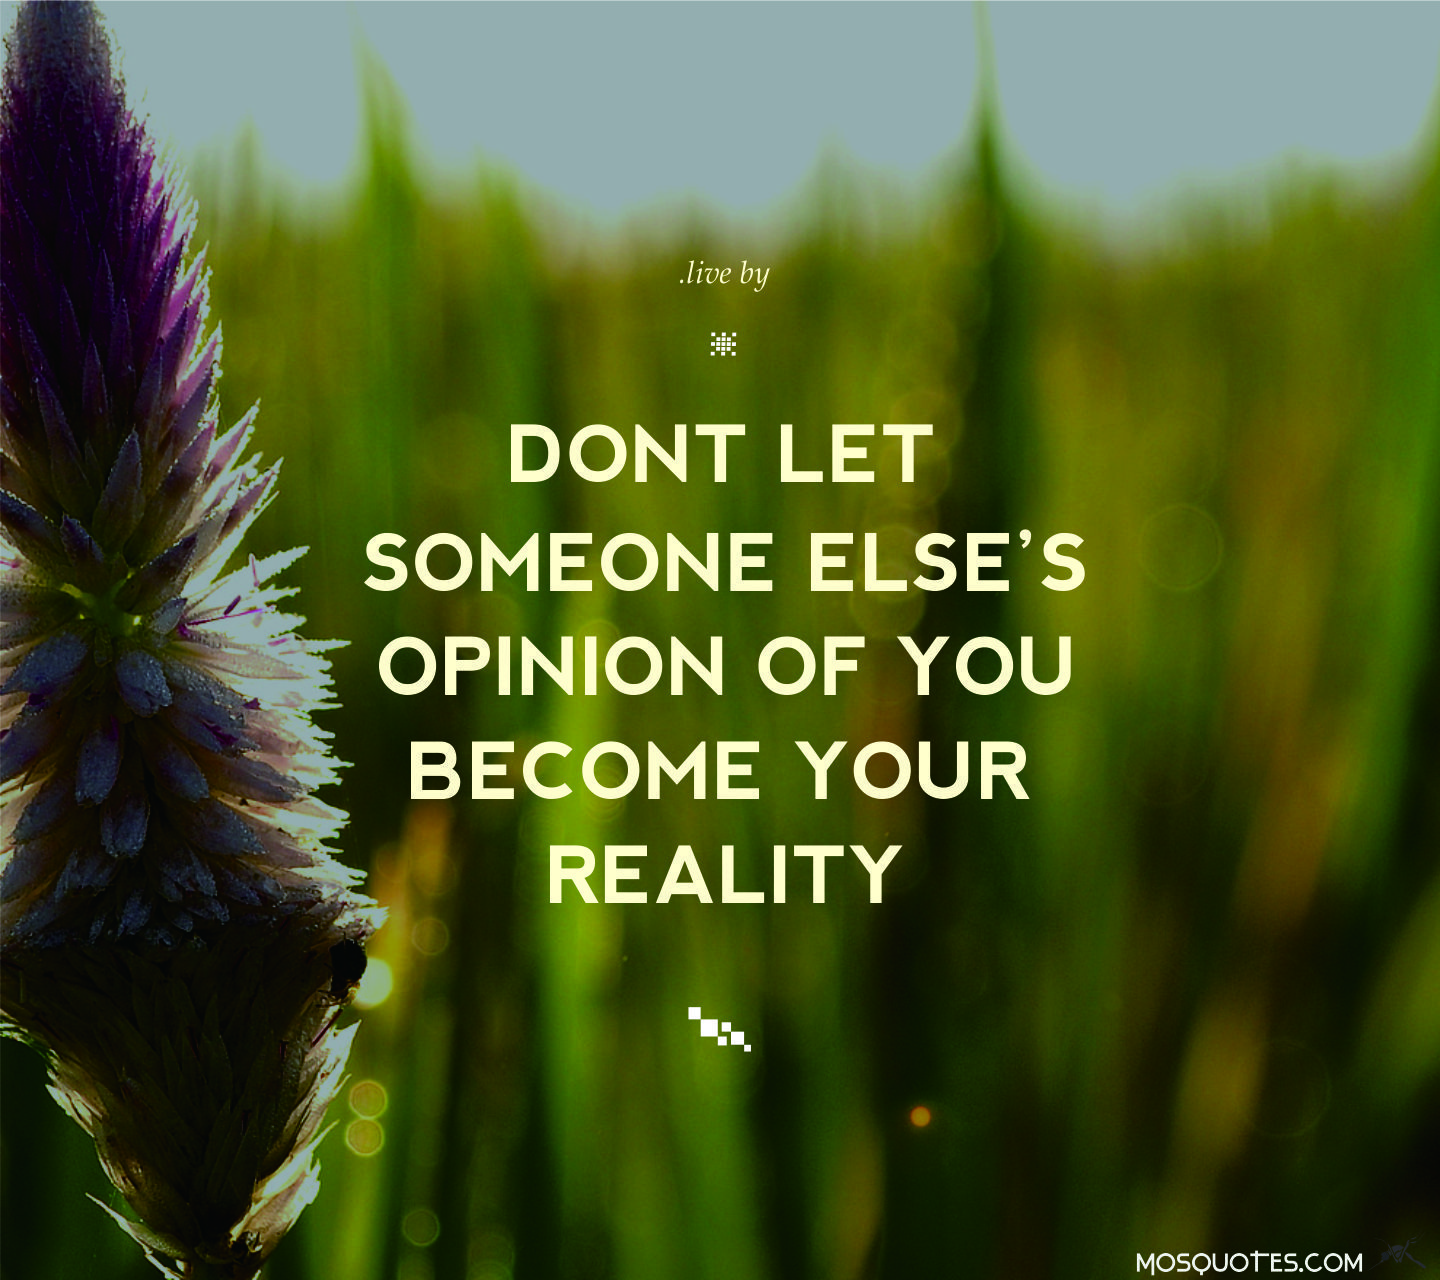 Live Quotes: Quotes To Live By Don't Let Someone Else's Opinion Of You